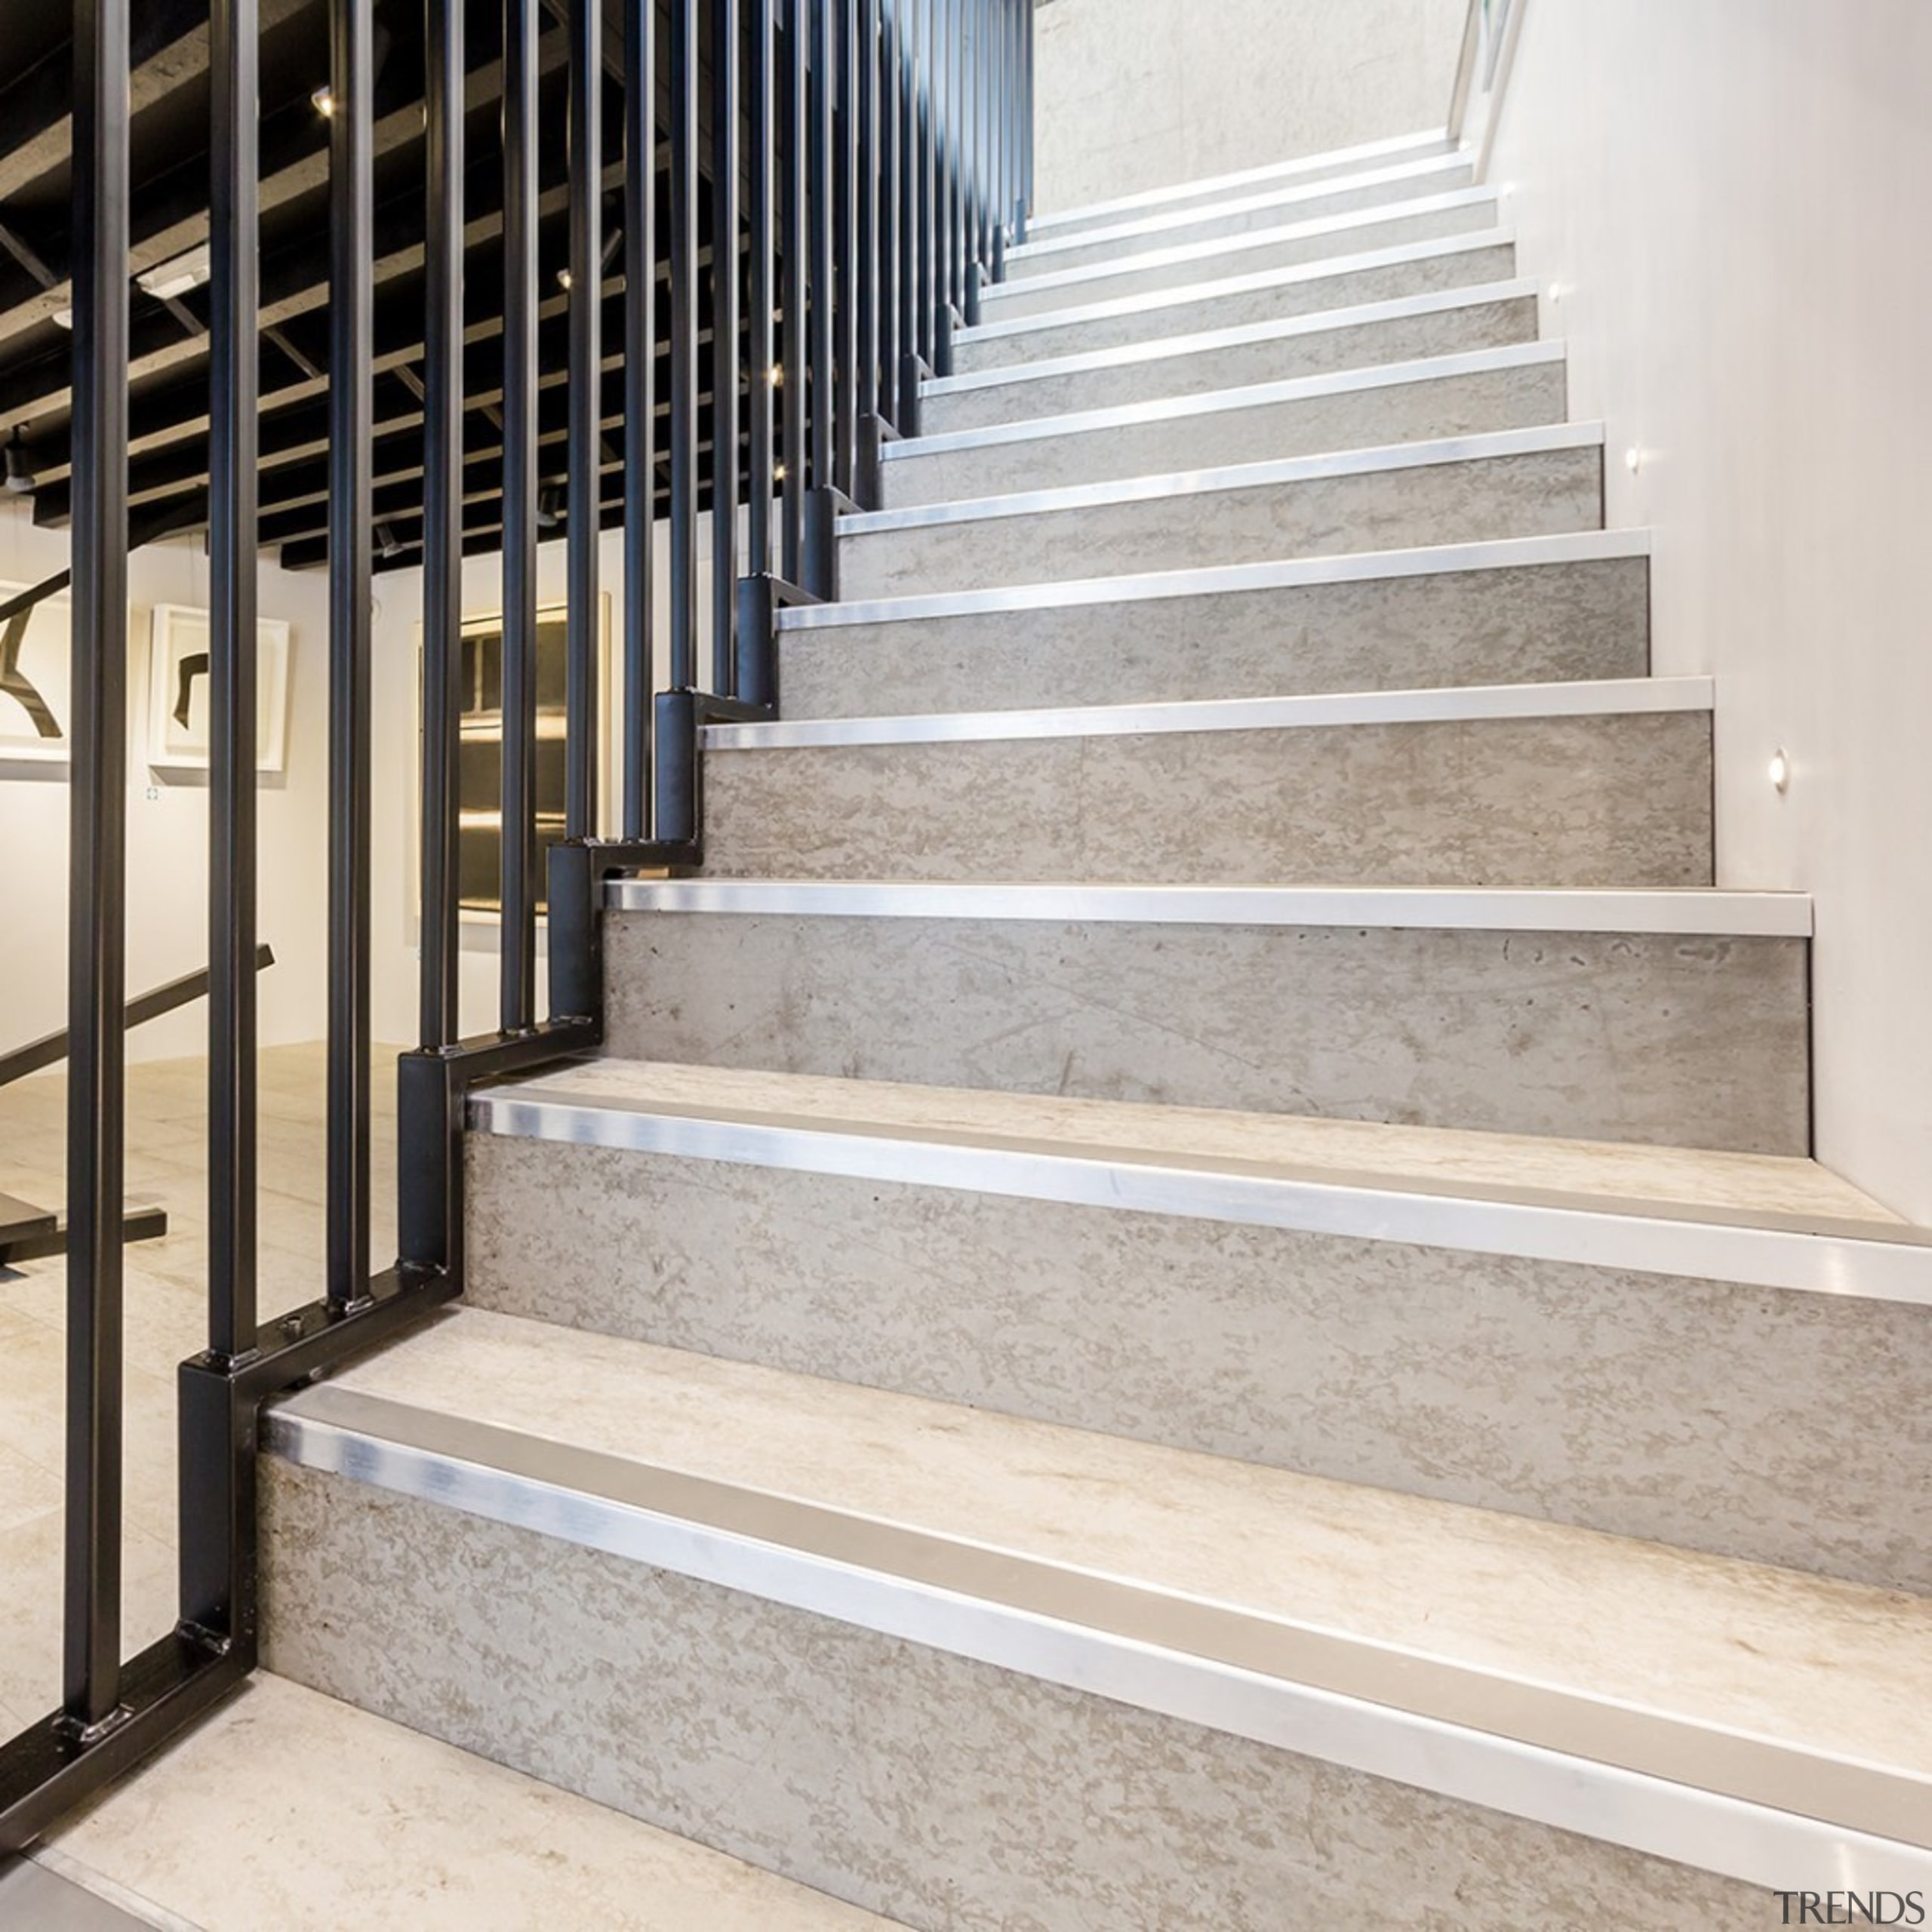 Concreate CF103 2 - Concreate_CF103_2 - architecture | architecture, floor, handrail, stairs, gray